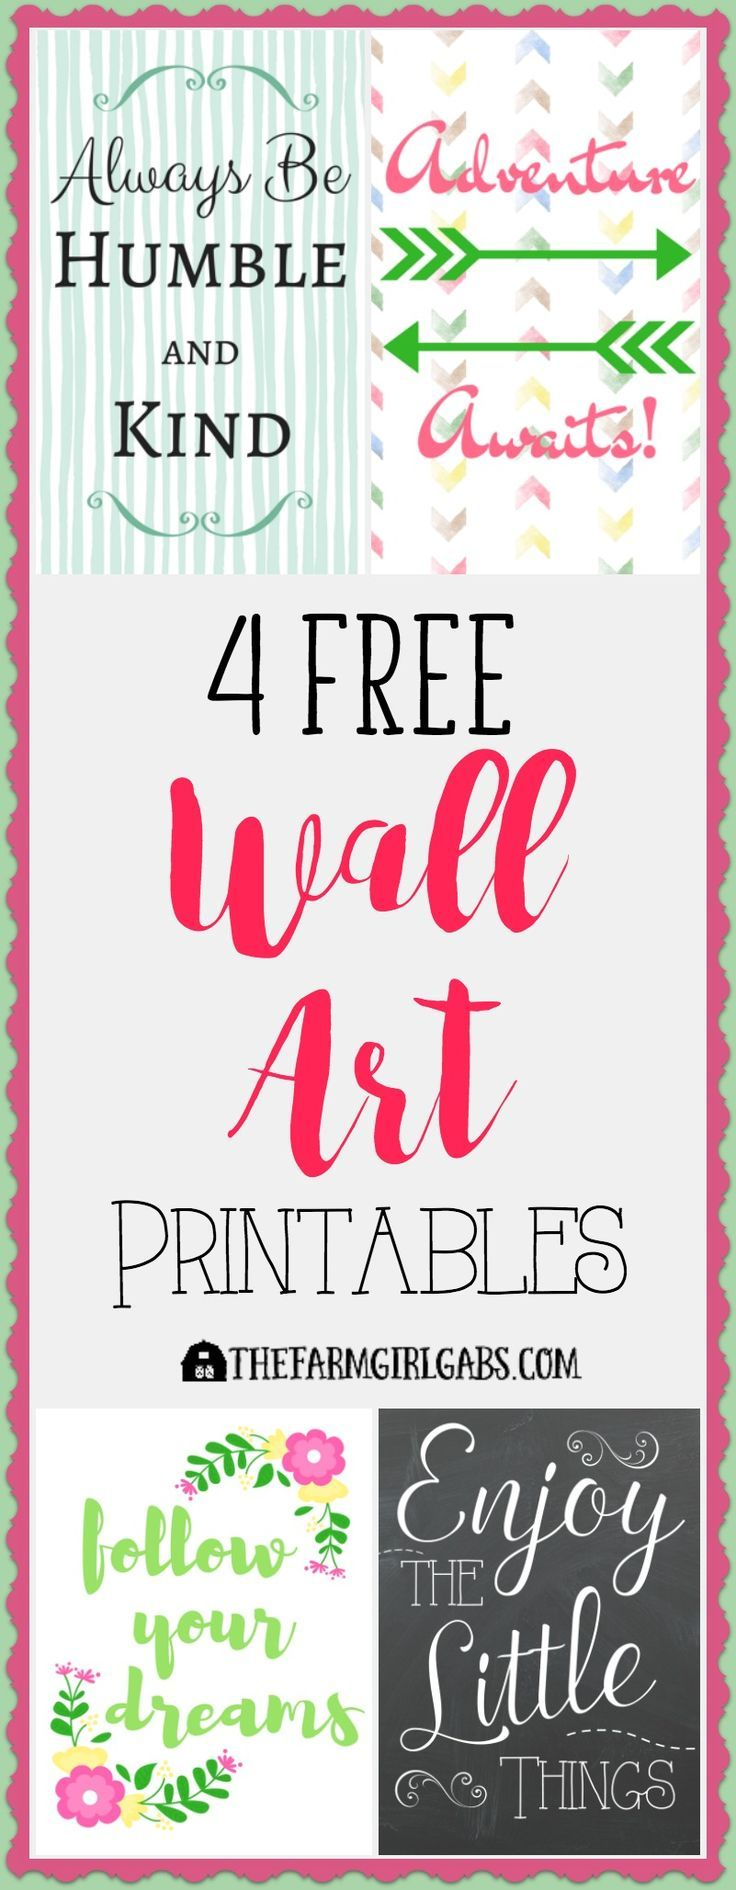 151 best DIY Signs & Wall Art images on Pinterest | Diy signs, Free ...